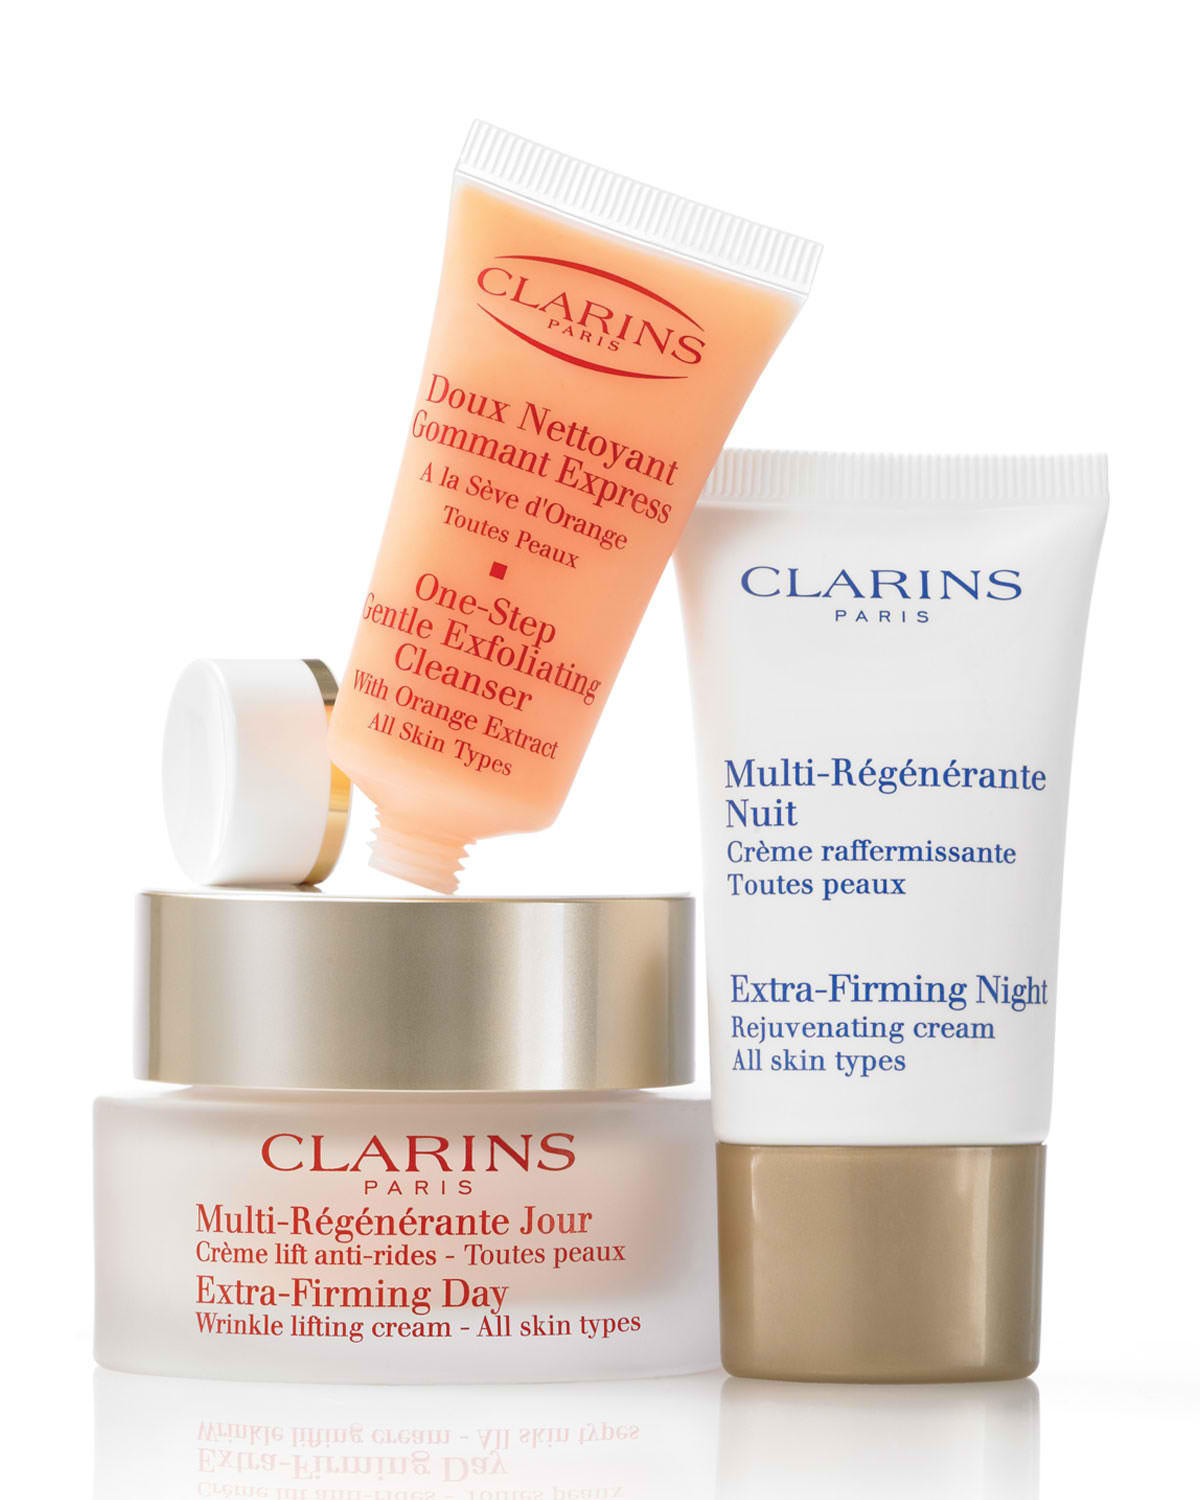 Up to 31% Off Clarins Skincare, Guelain Makeup & More On Sale @ MYHABIT